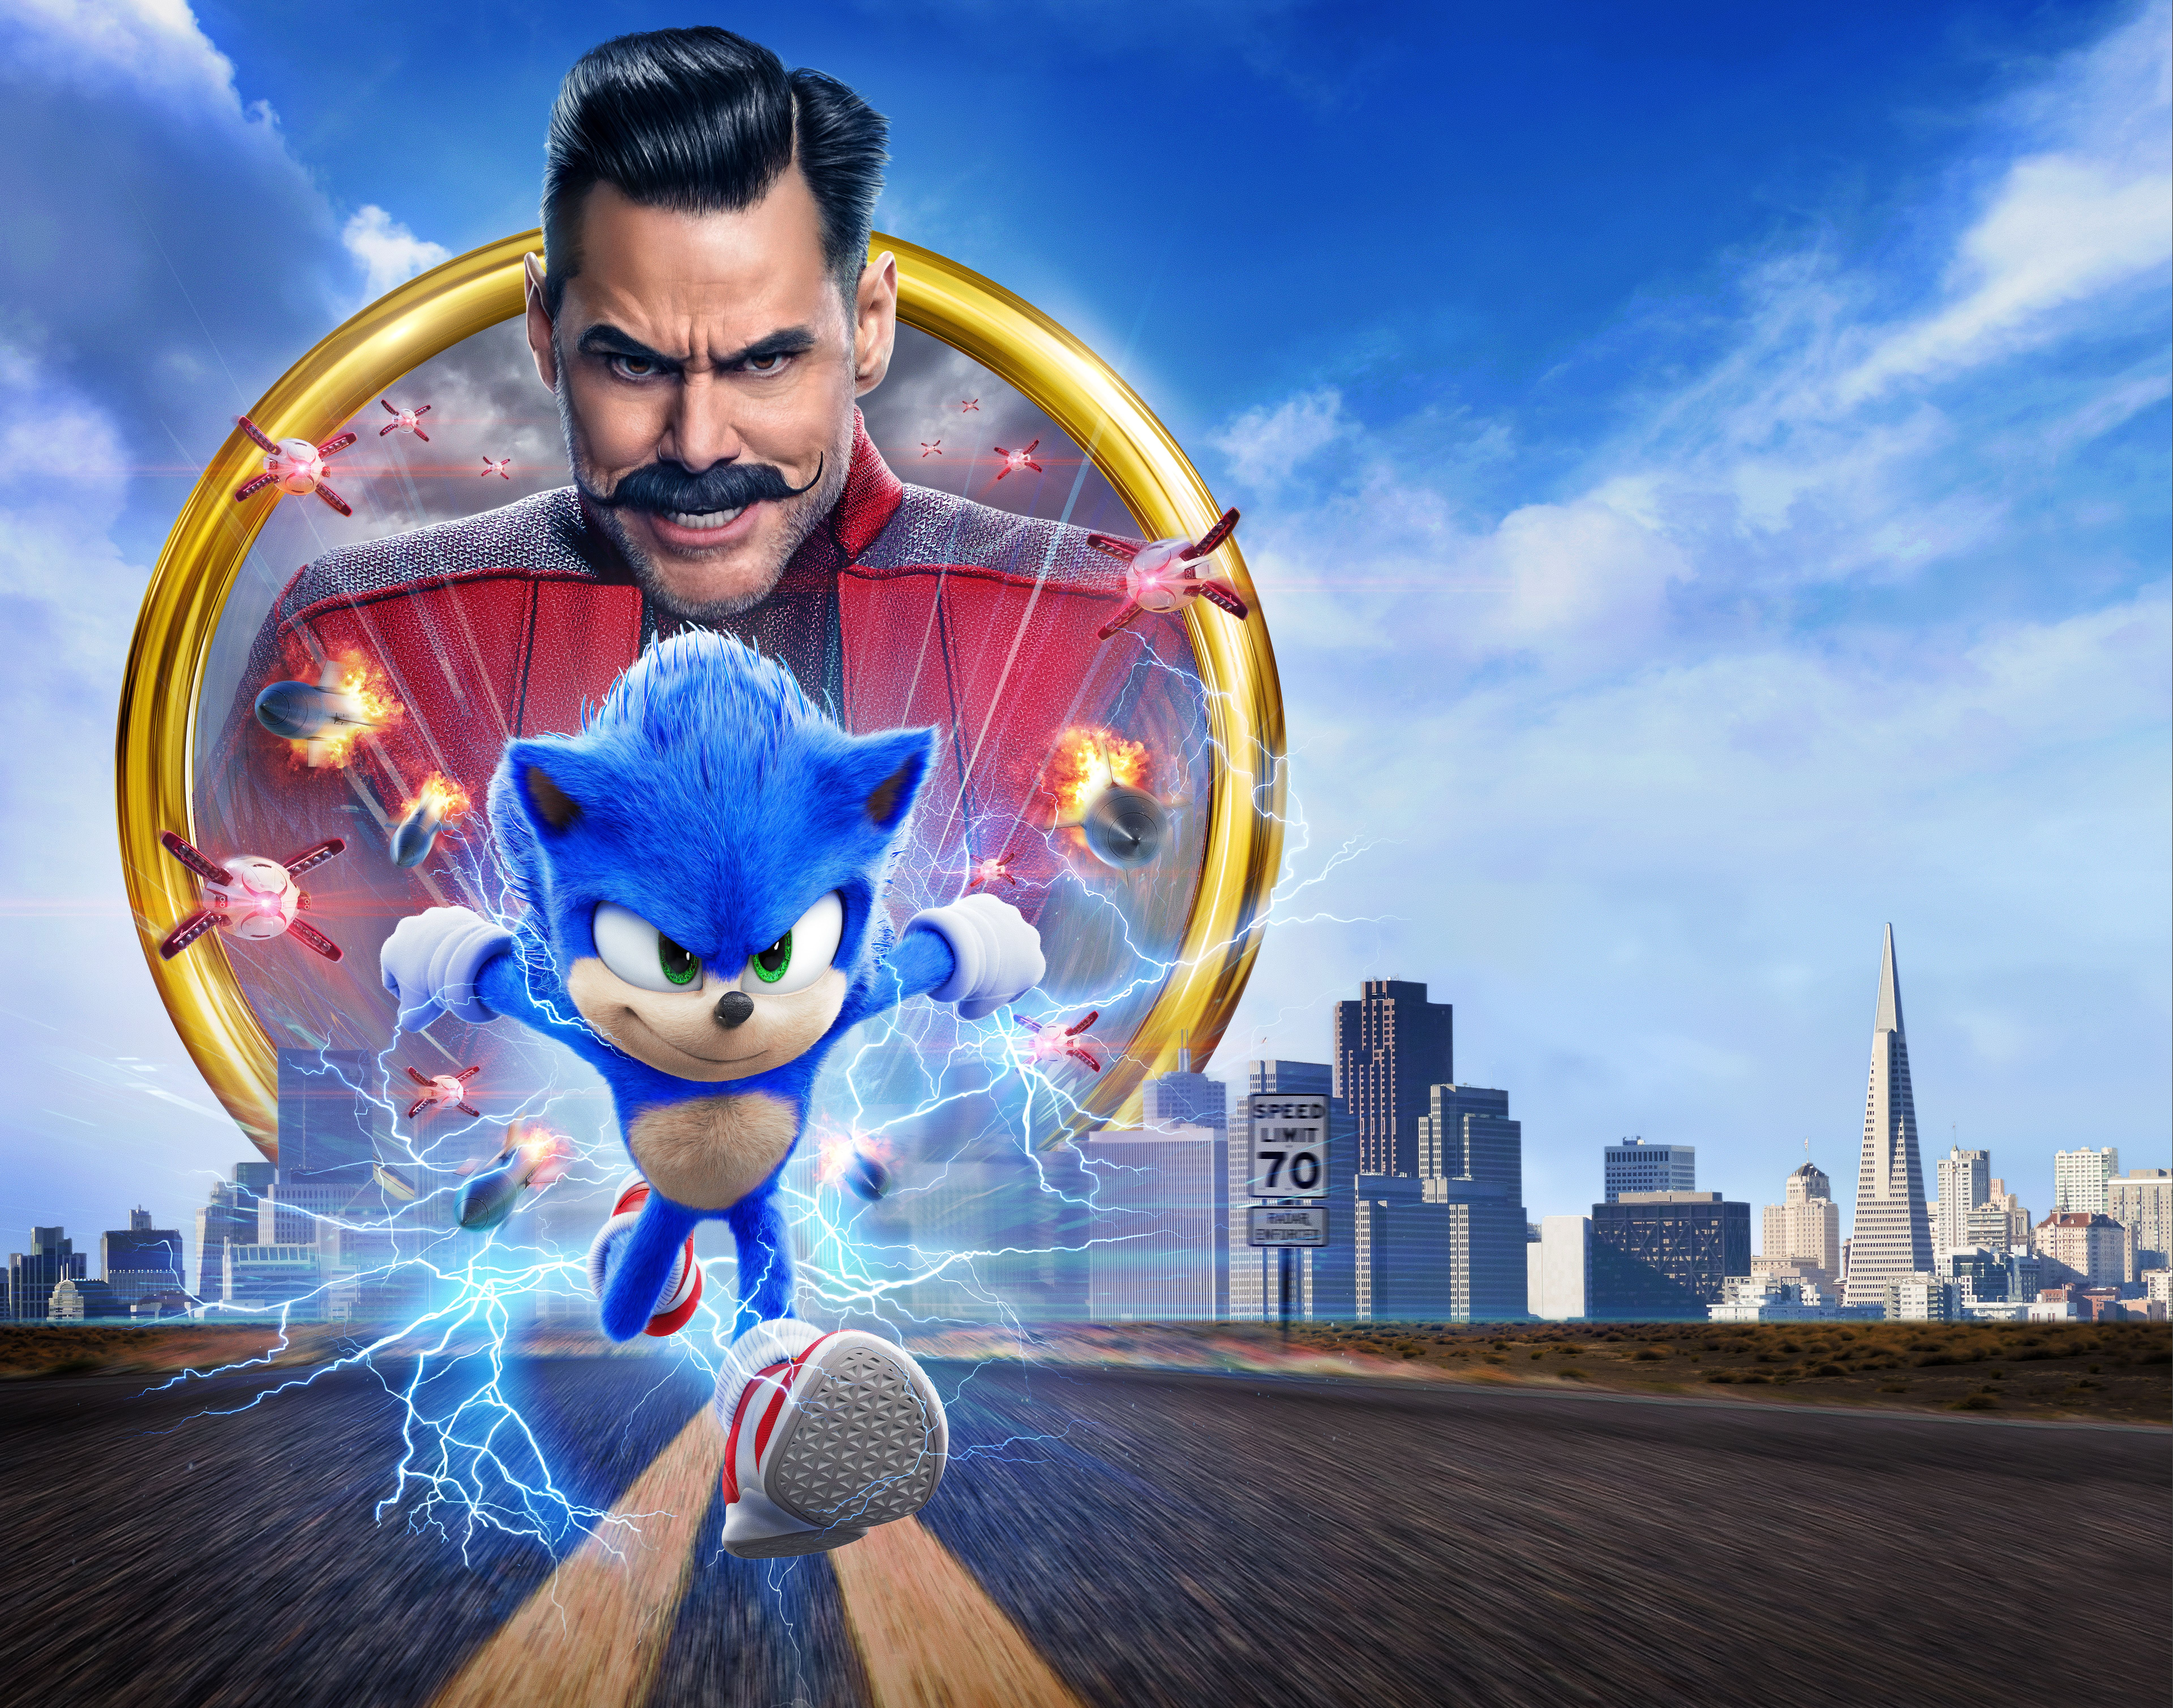 Sonic The Hedgehog Movie Sonic Wallpapers Sonic The Hedgehog Movie 4k Wallpapers Sonic Movie Wallpapers 202 Hedgehog Movie Sonic The Hedgehog Sonic The Movie